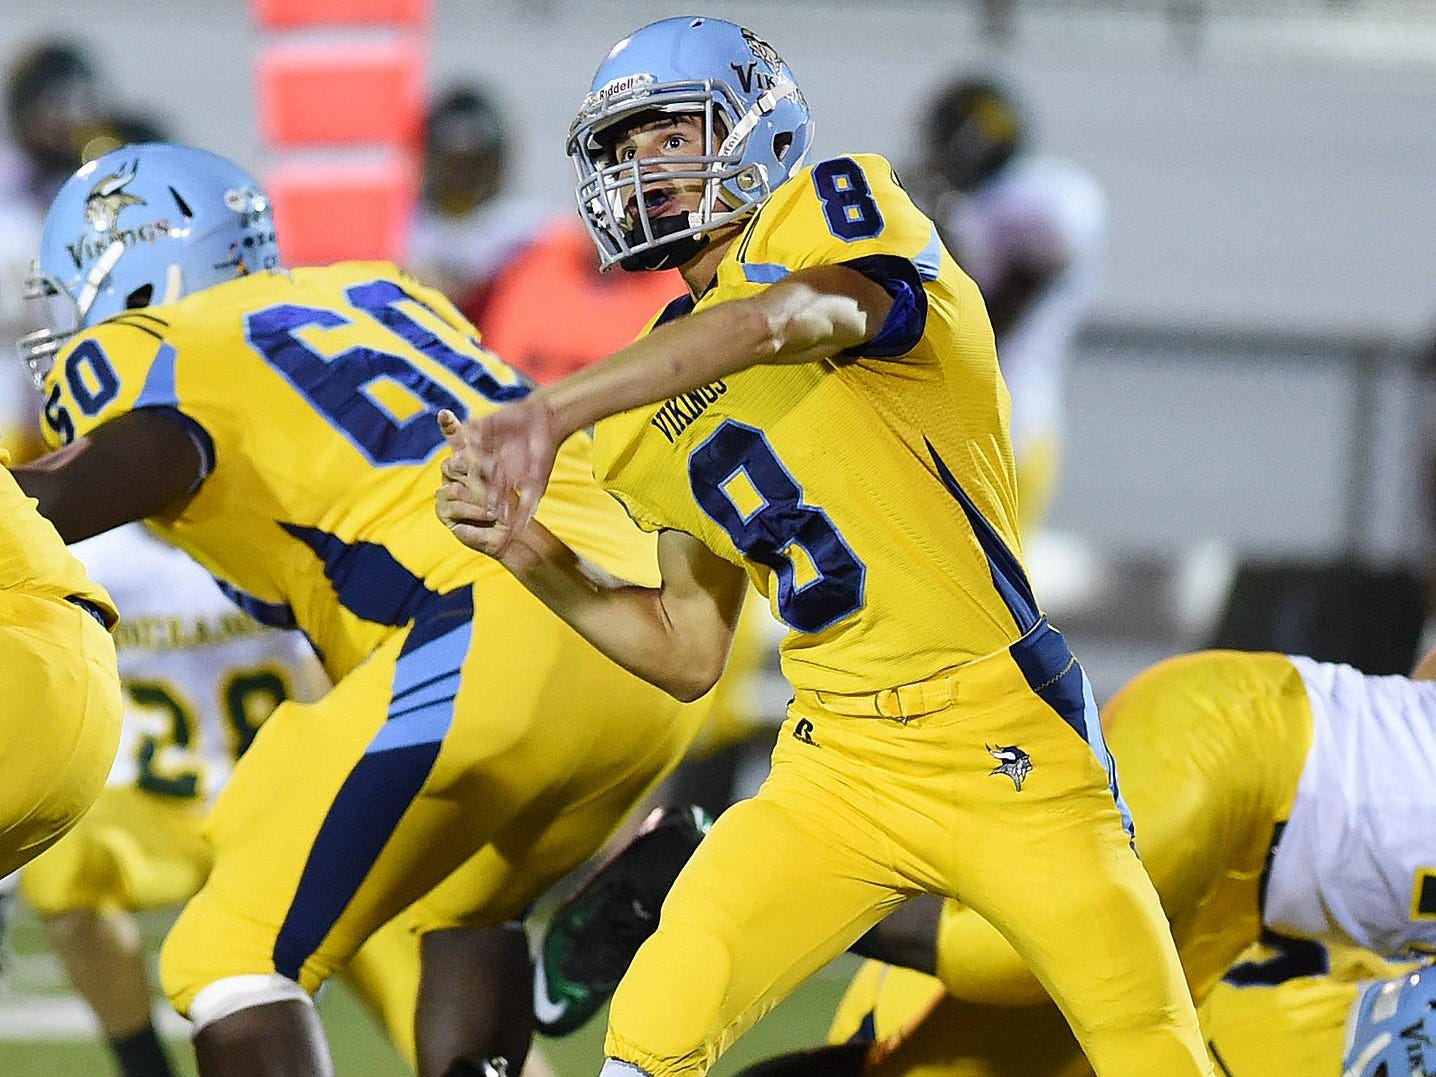 Cape quarterback #8 Dillon Adams fires a pass as Cape Henlopen (yellow) hosted Indian River (white) on Friday night.